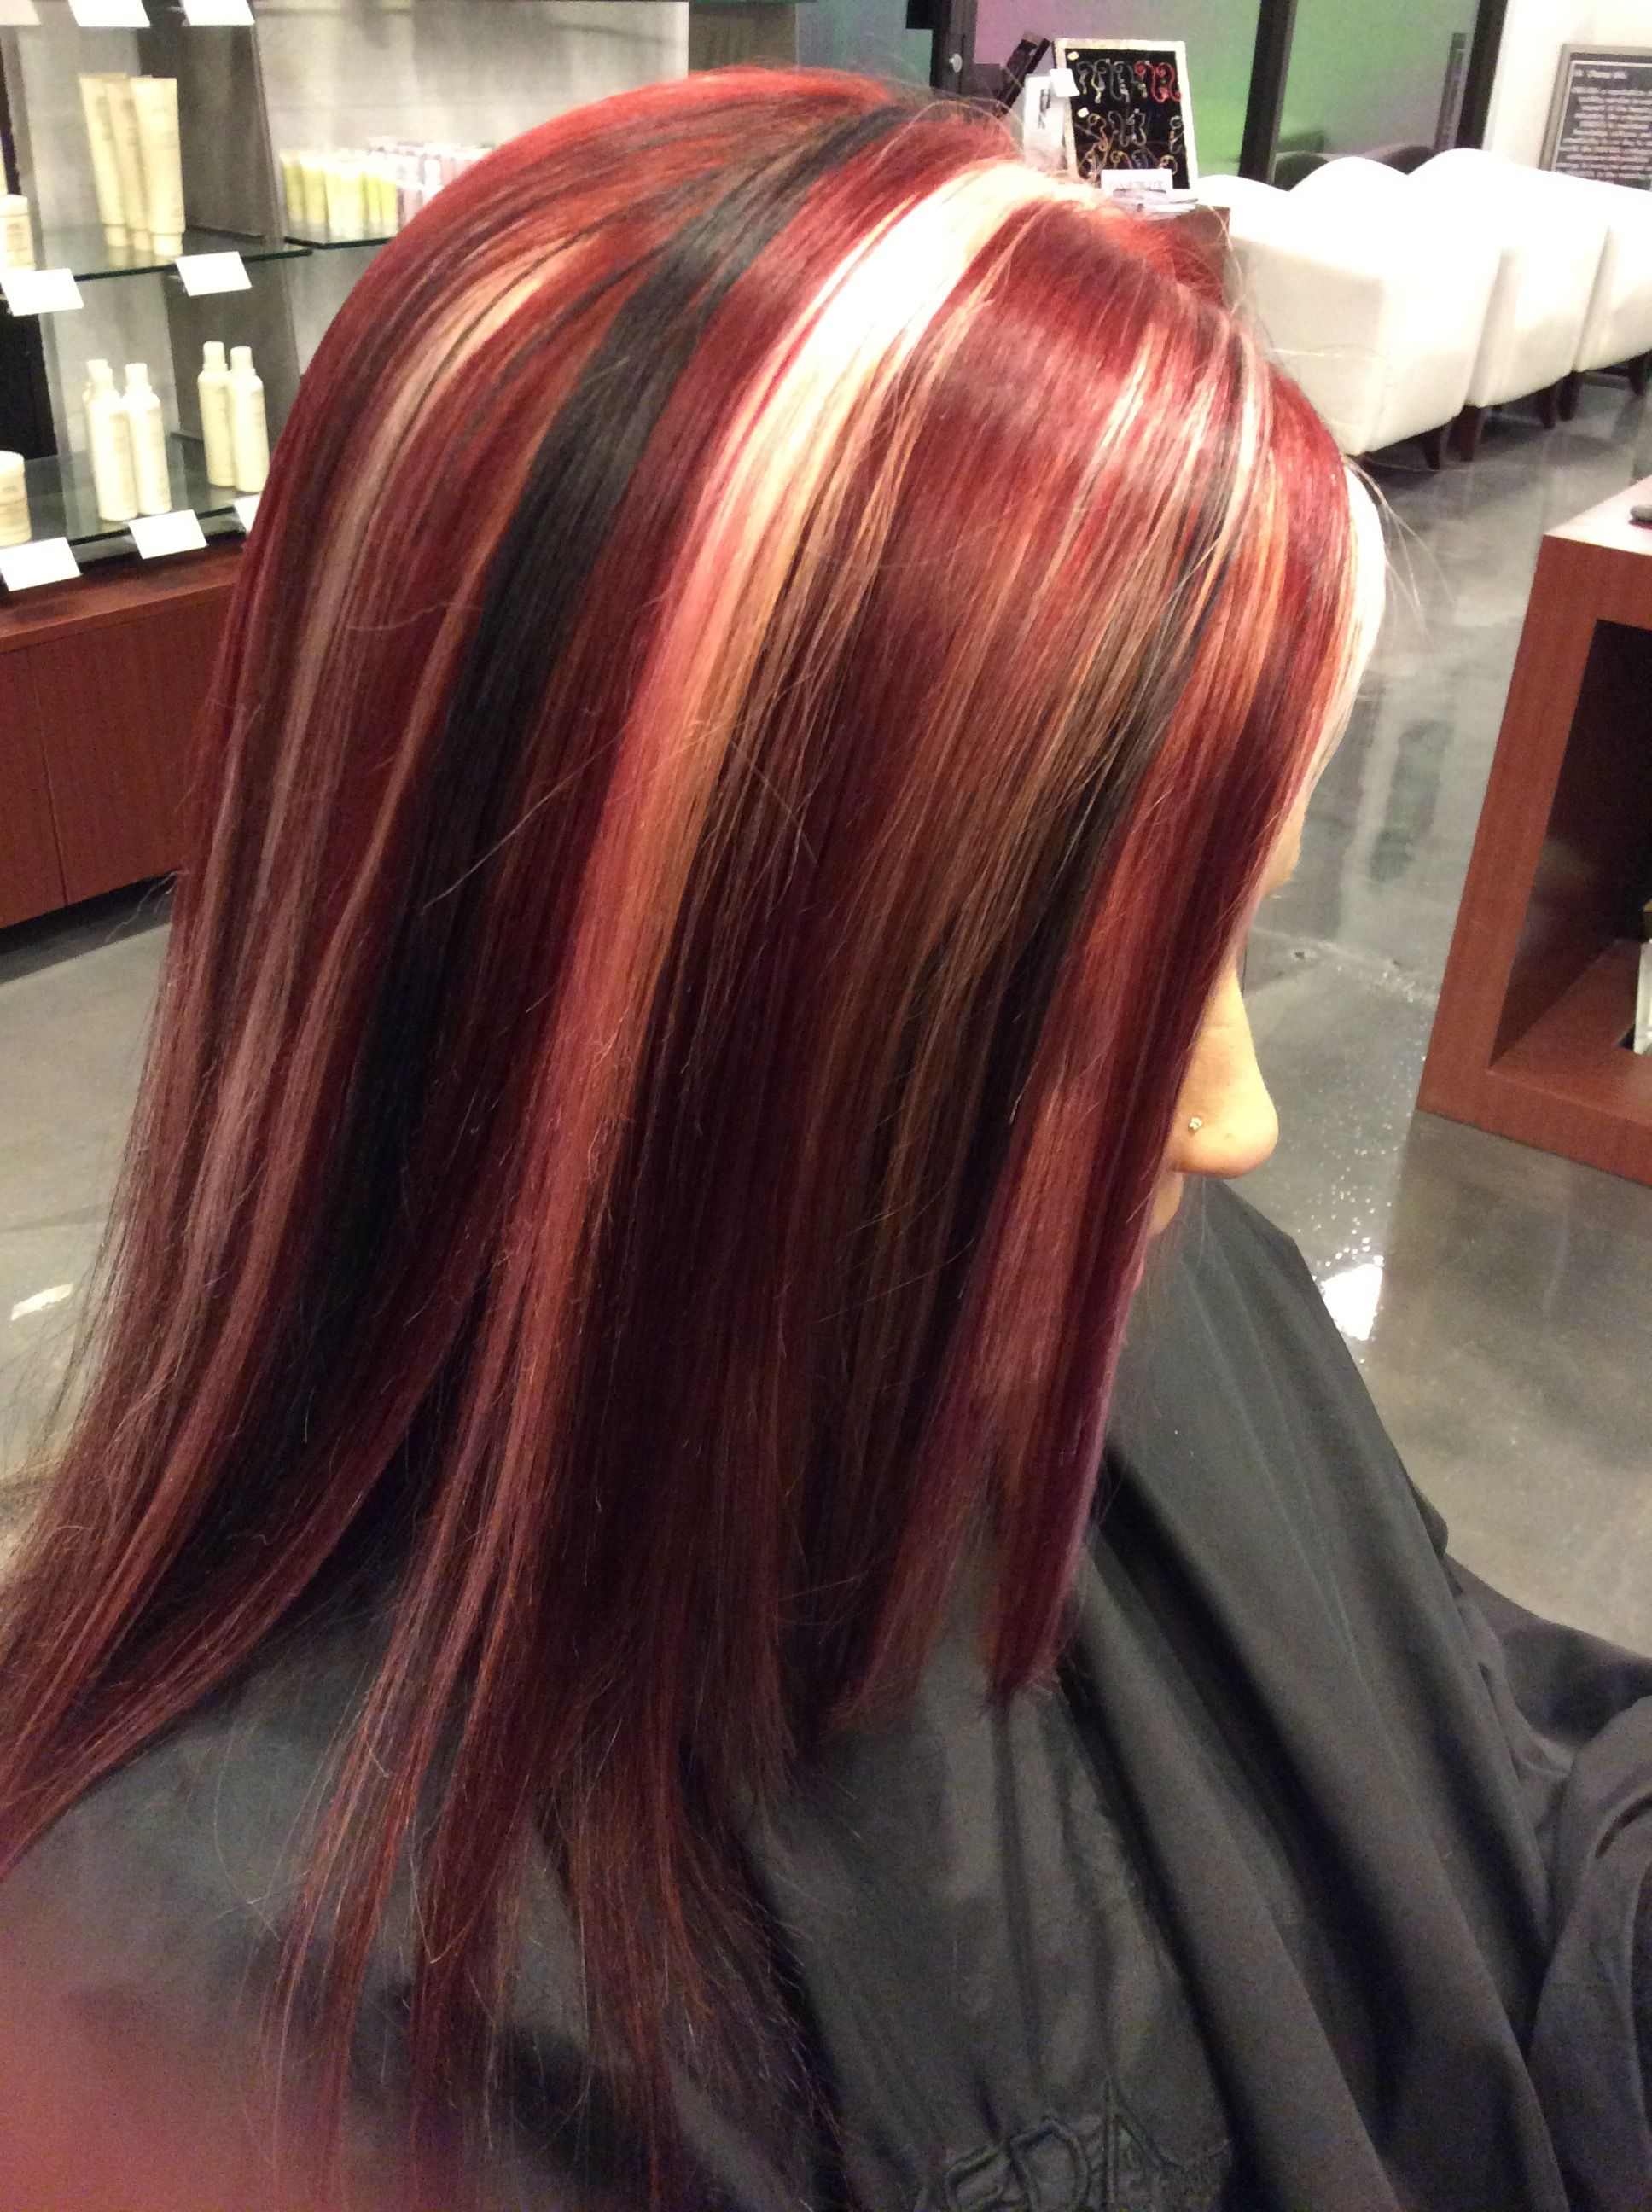 Chunky Bold Red Blonde And Black Highlights By Kim Pretty Hair Color Spring Hair Color Curly Hair Styles